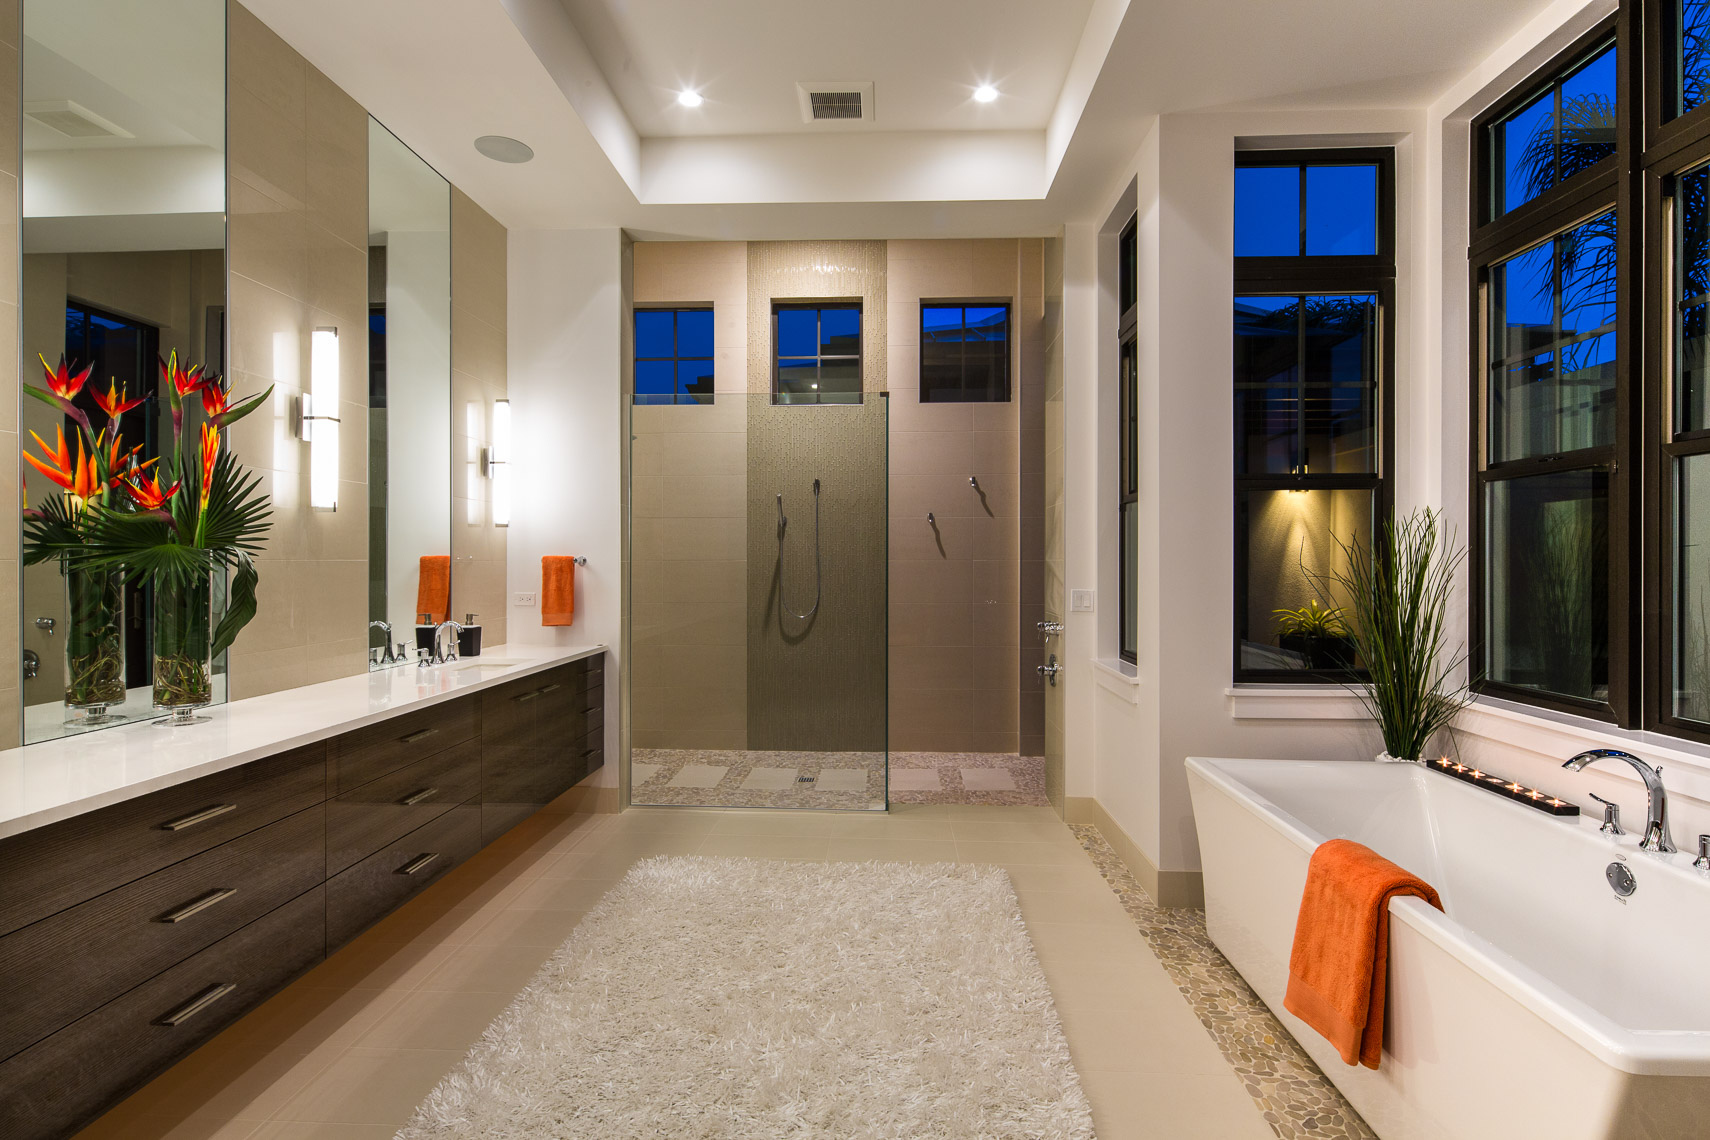 Bathroom, Coastal West Indies Architecture - Mark Borosch Photography - Lakewood Ranch, FL